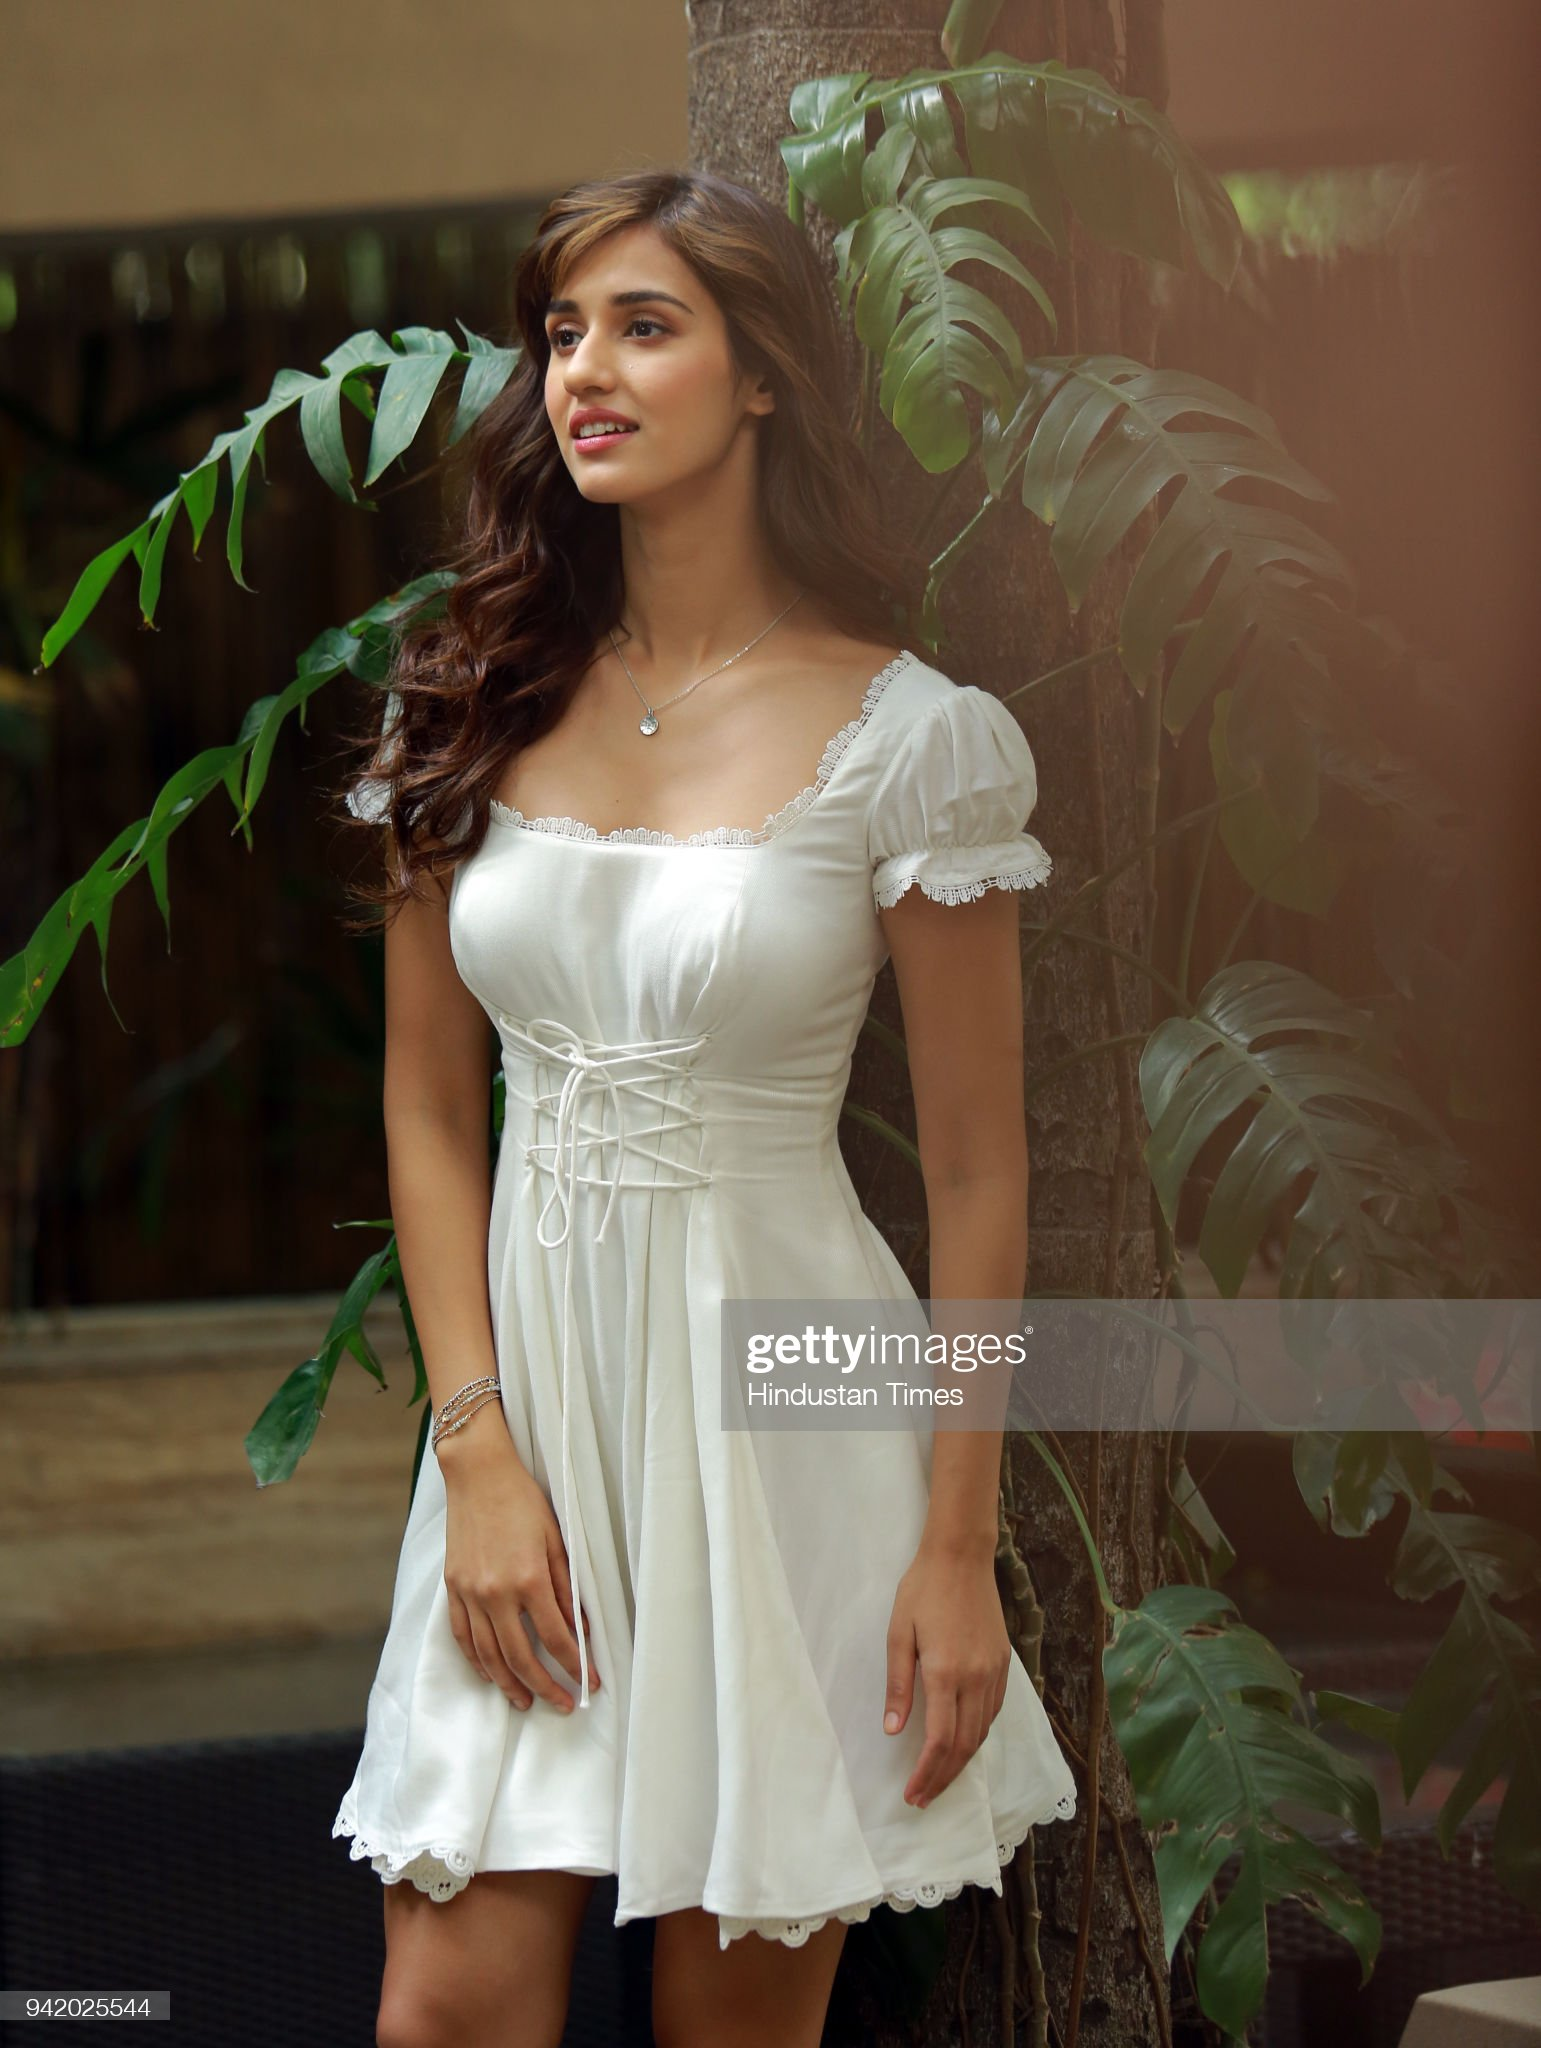 bollywood-actress-disha-patani-during-promotion-of-her-upcoming-movie-picture-id942025544